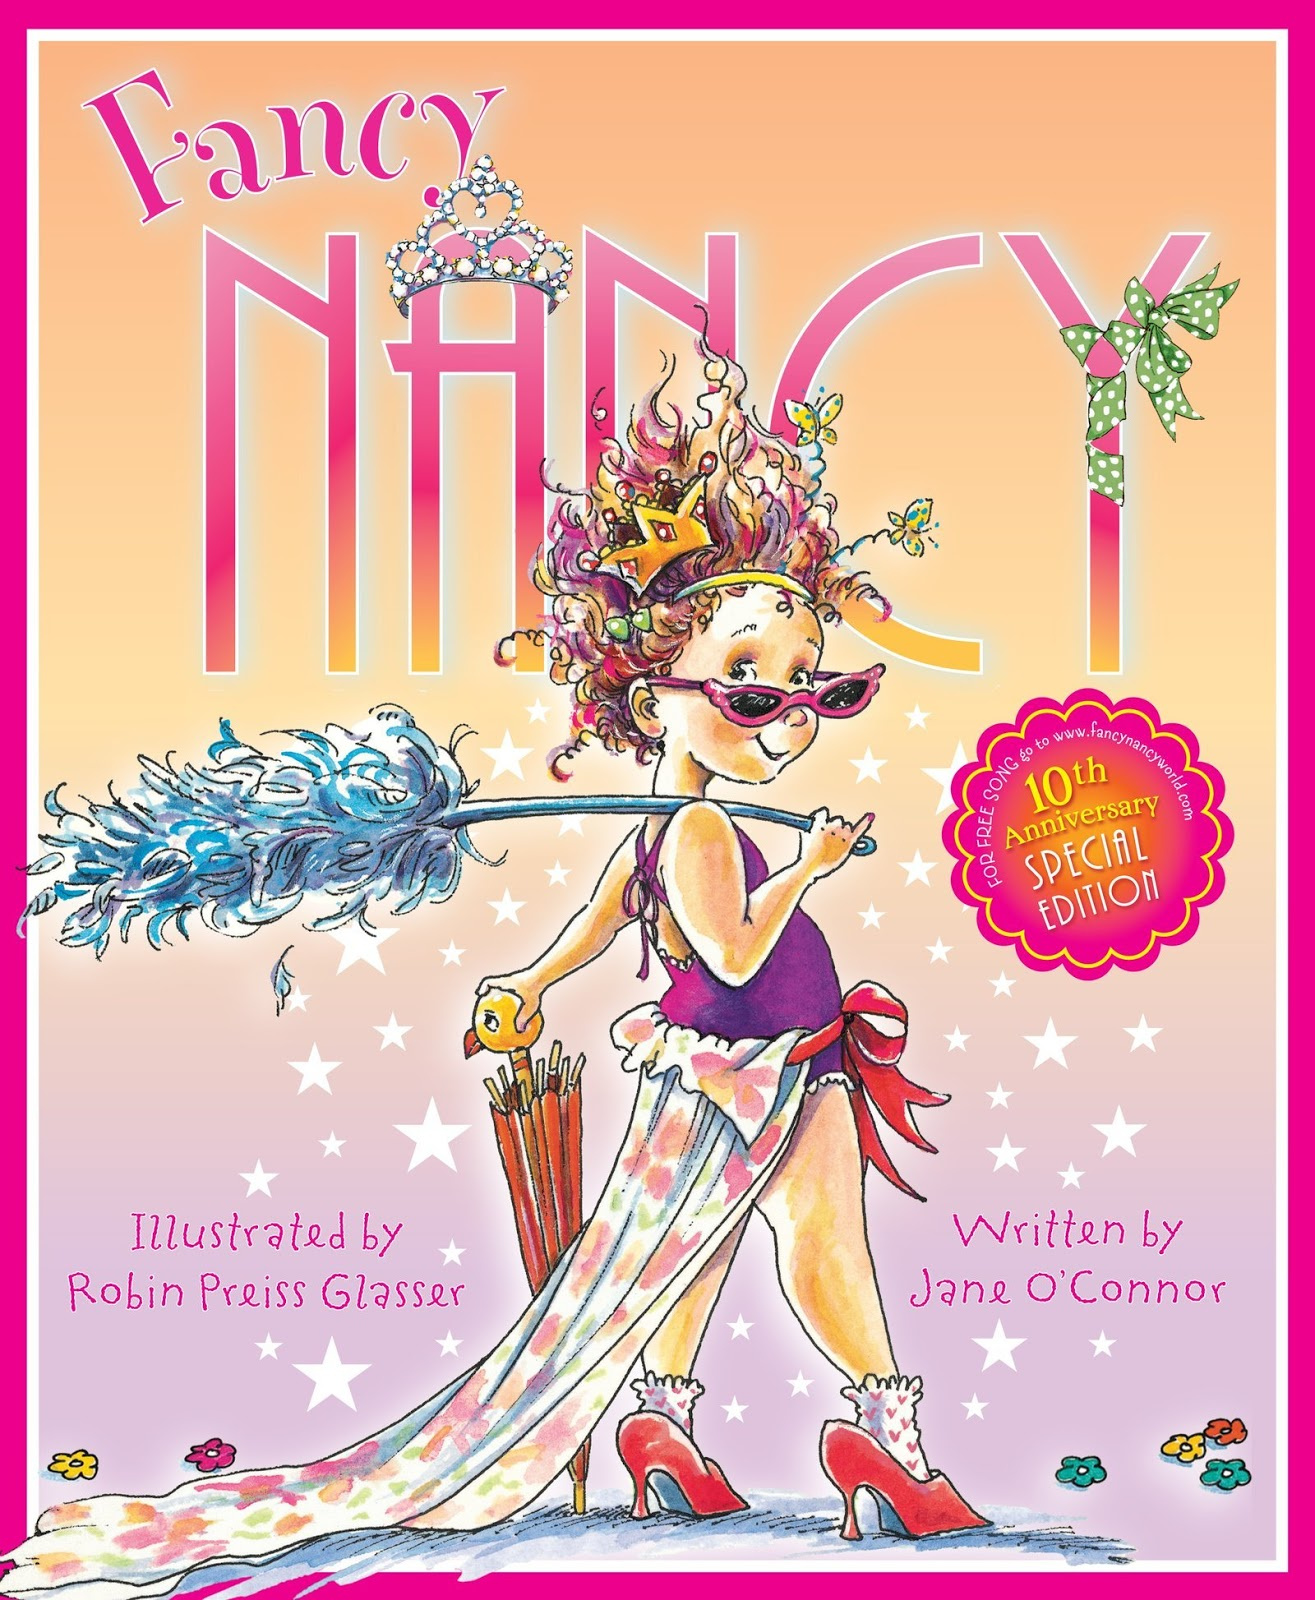 Ooh la la fancy nancy childrens books celebrate 10th anniversary ooh la la fancy nancy childrens books celebrate 10th anniversary solutioingenieria